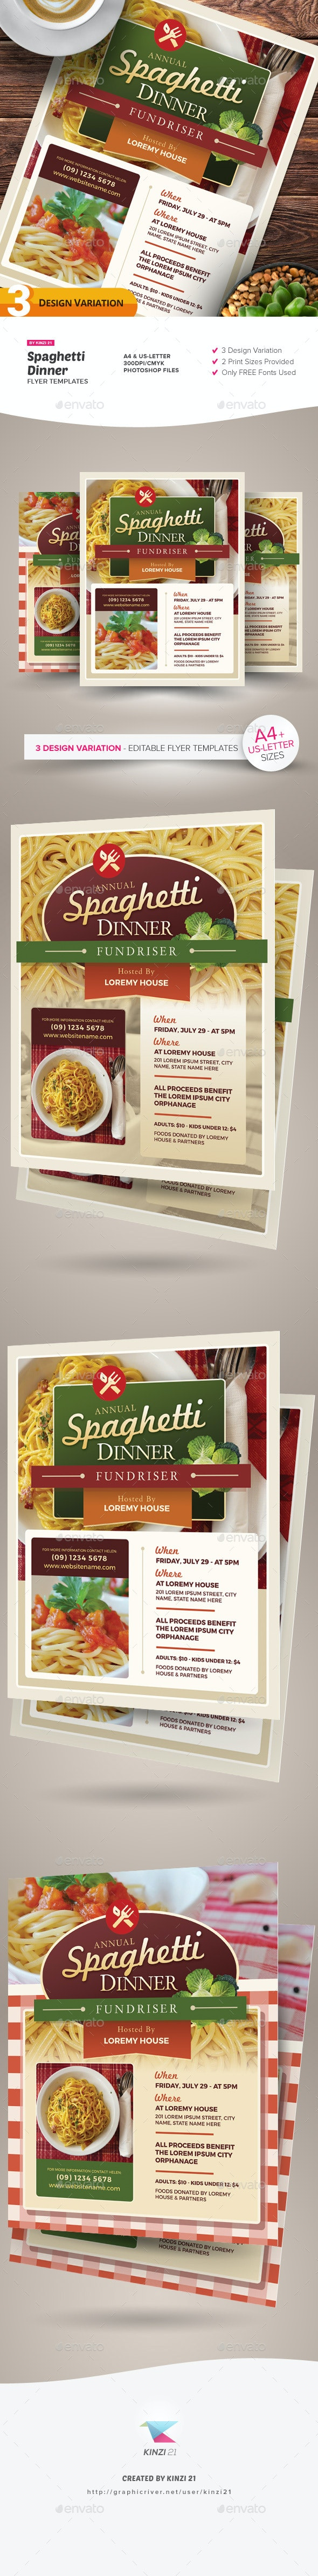 Spaghetti Dinner Flyer Templates - Miscellaneous Events